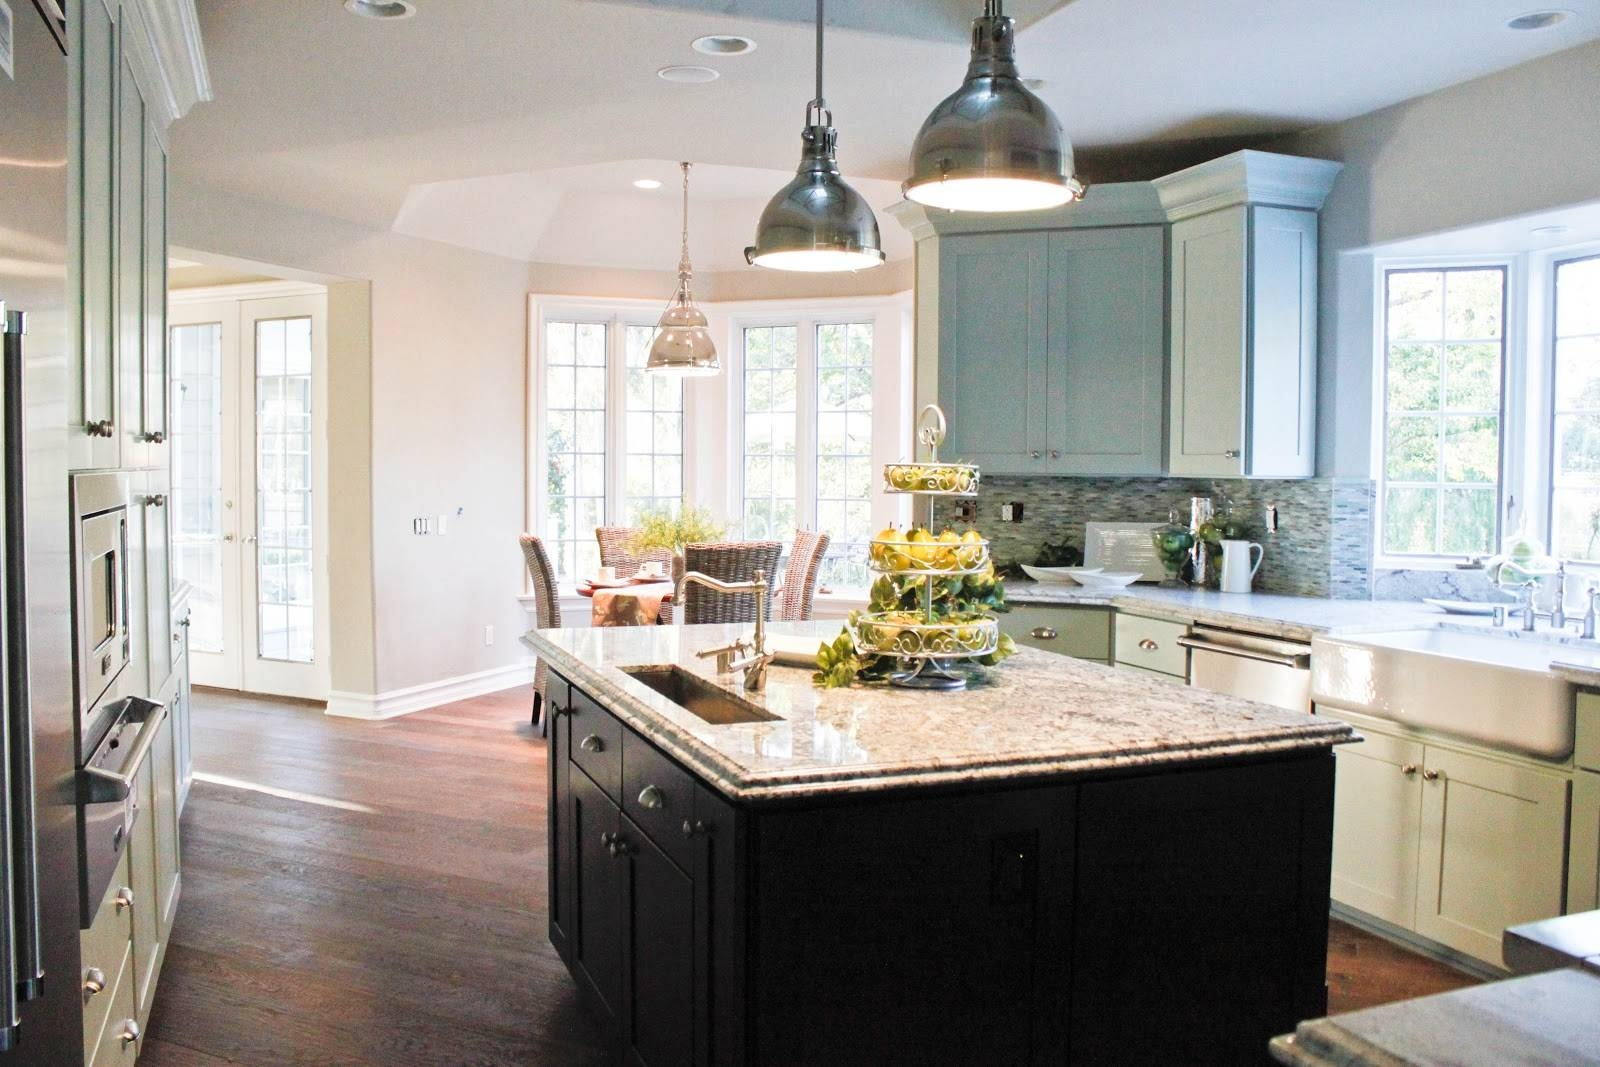 Photos Hgtv Kitchen Island With Stainless Steel Pendant Lights intended for Stainless Steel Kitchen Lights (Image 12 of 15)